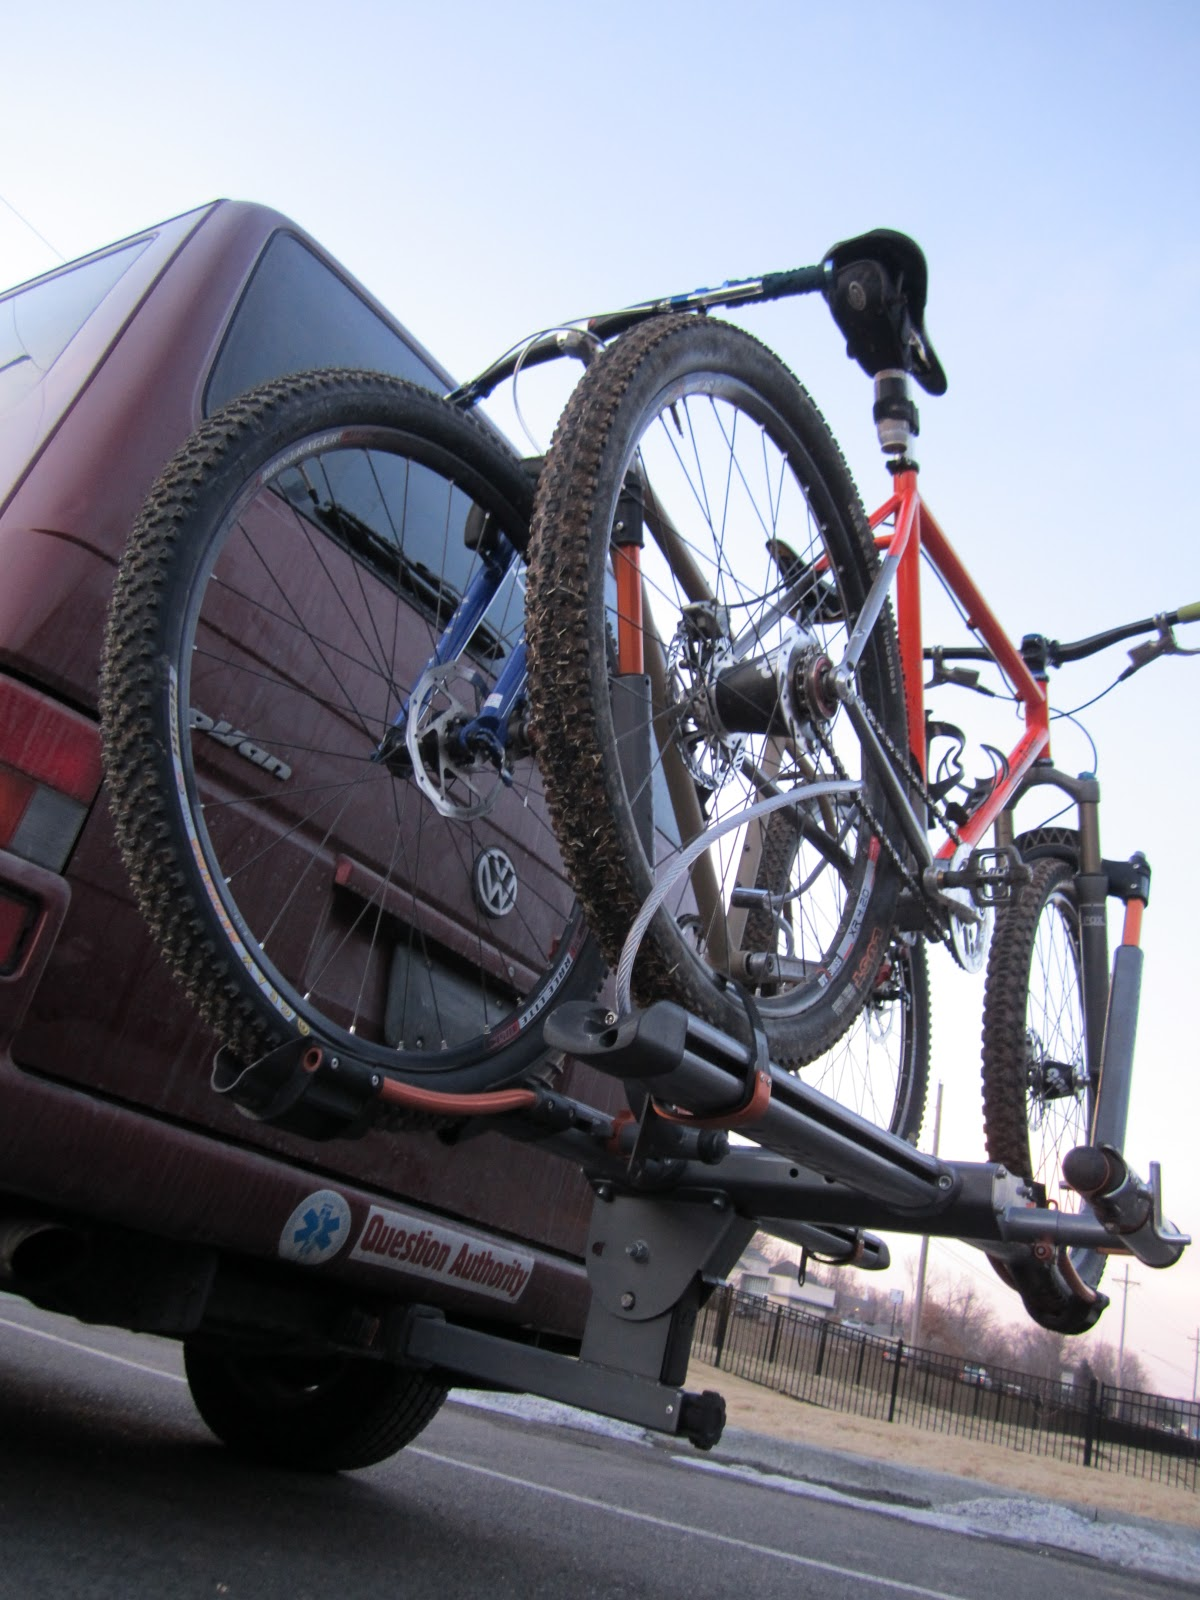 trailer beta thule galery transfer bike new gm hitch mounted carrier lovequilts rack kuat